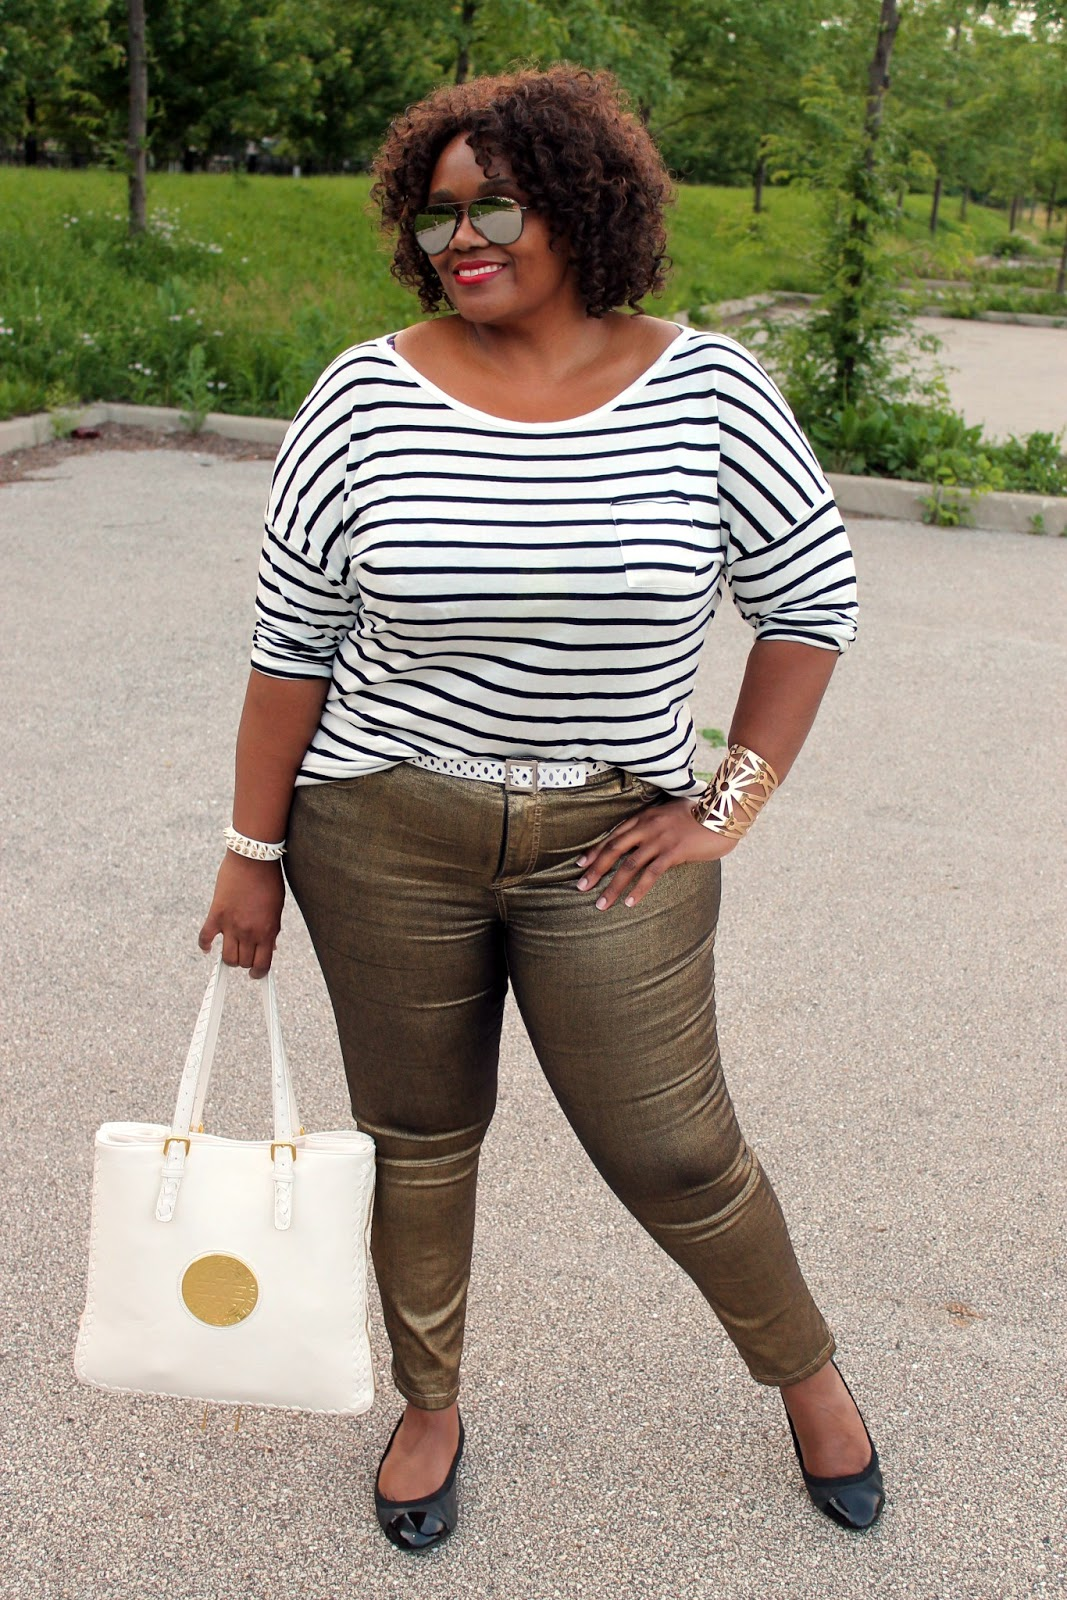 OOTD} My #Plussize Casual Style: Gold   Stripes | Curvatude ...